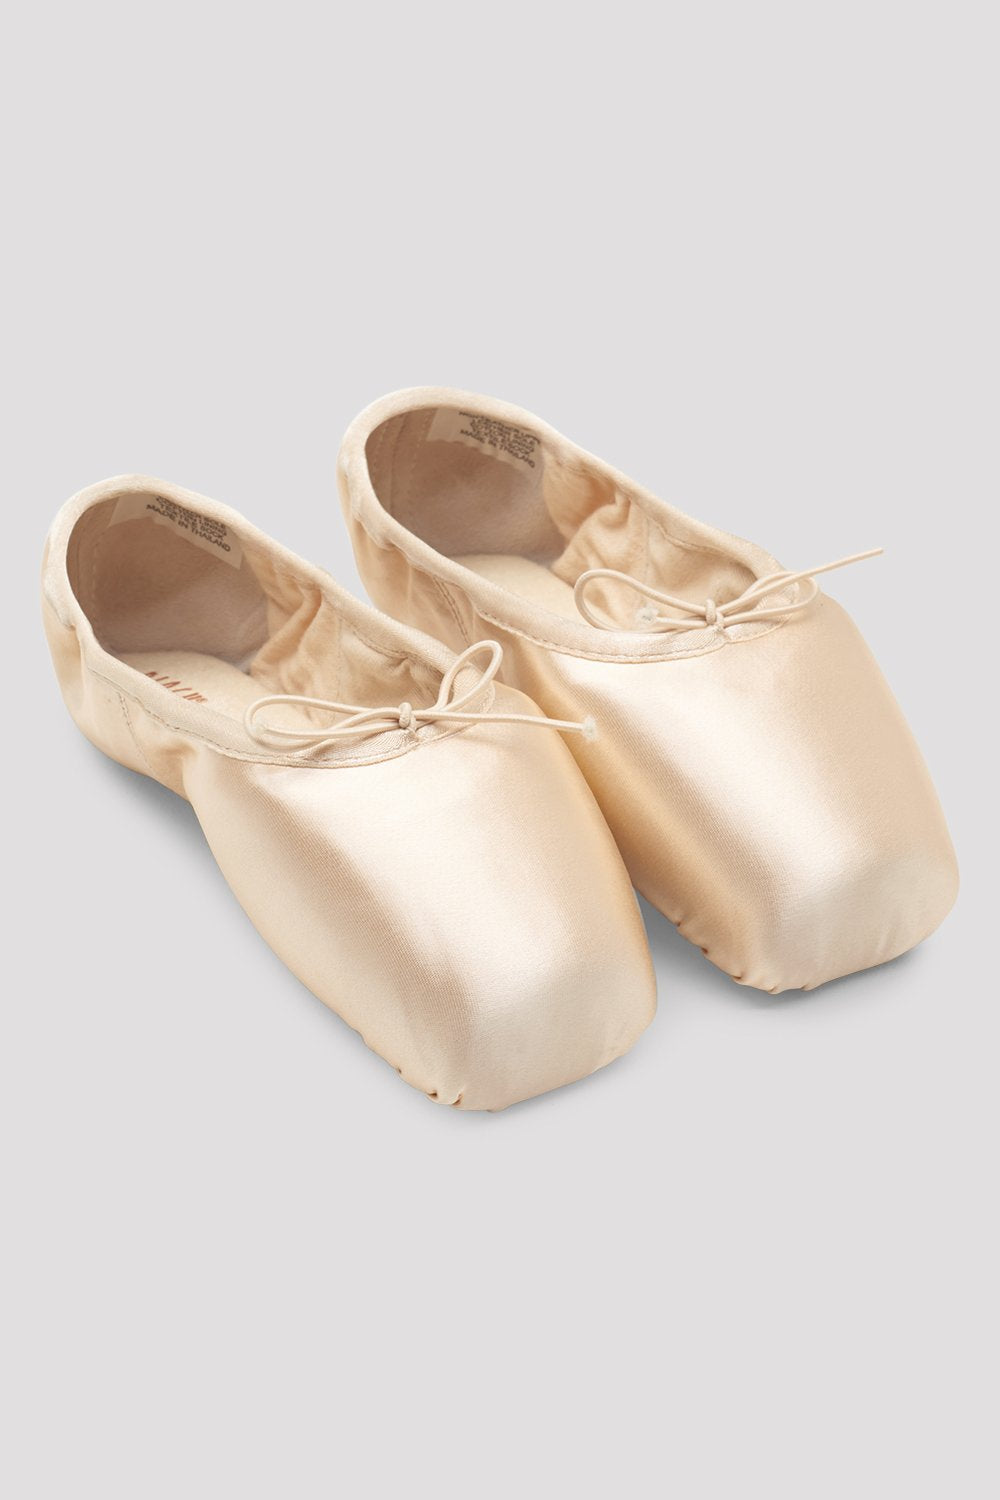 Pink Satin Bloch Eurostretch Pointe Shoes flatlay pair of shoes